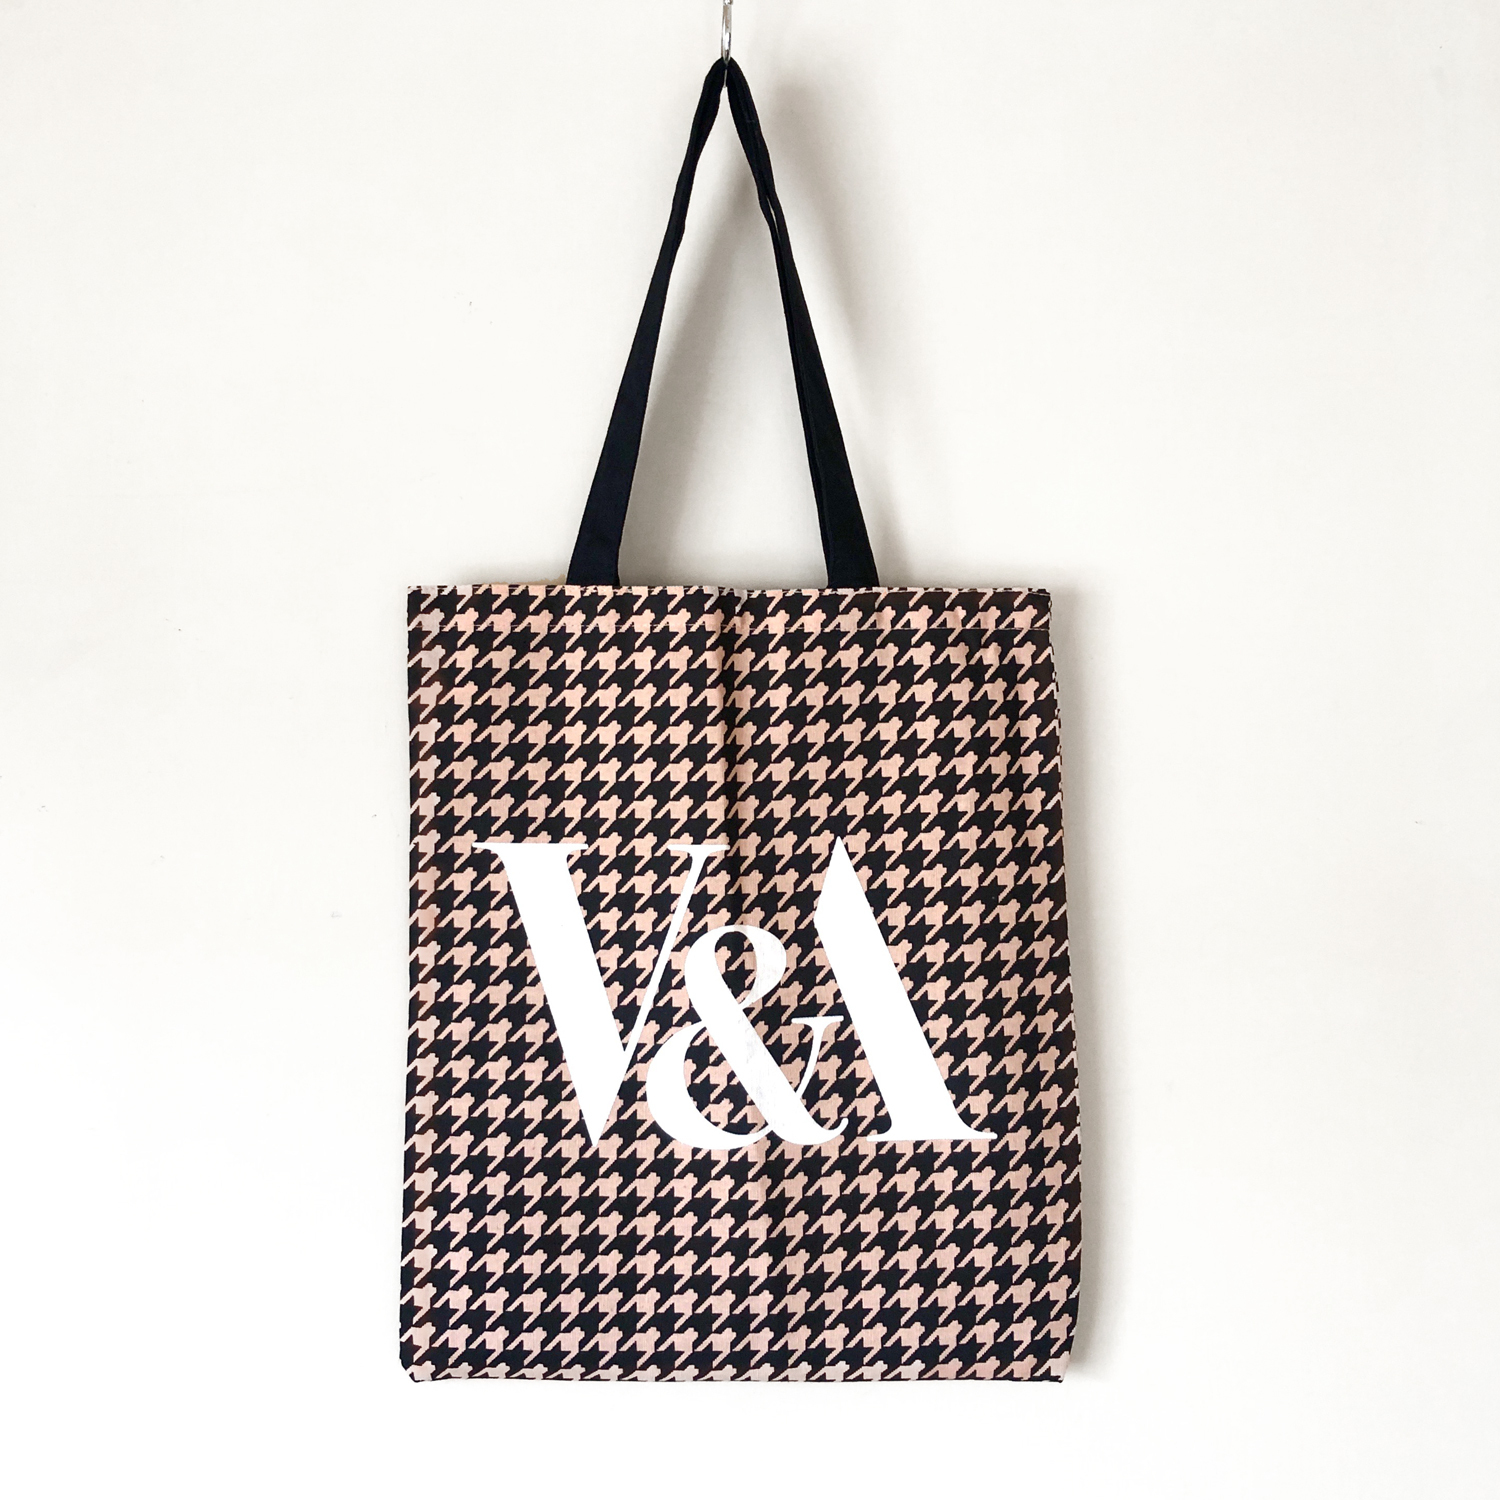 V&A design tote bag / TB-002 PK